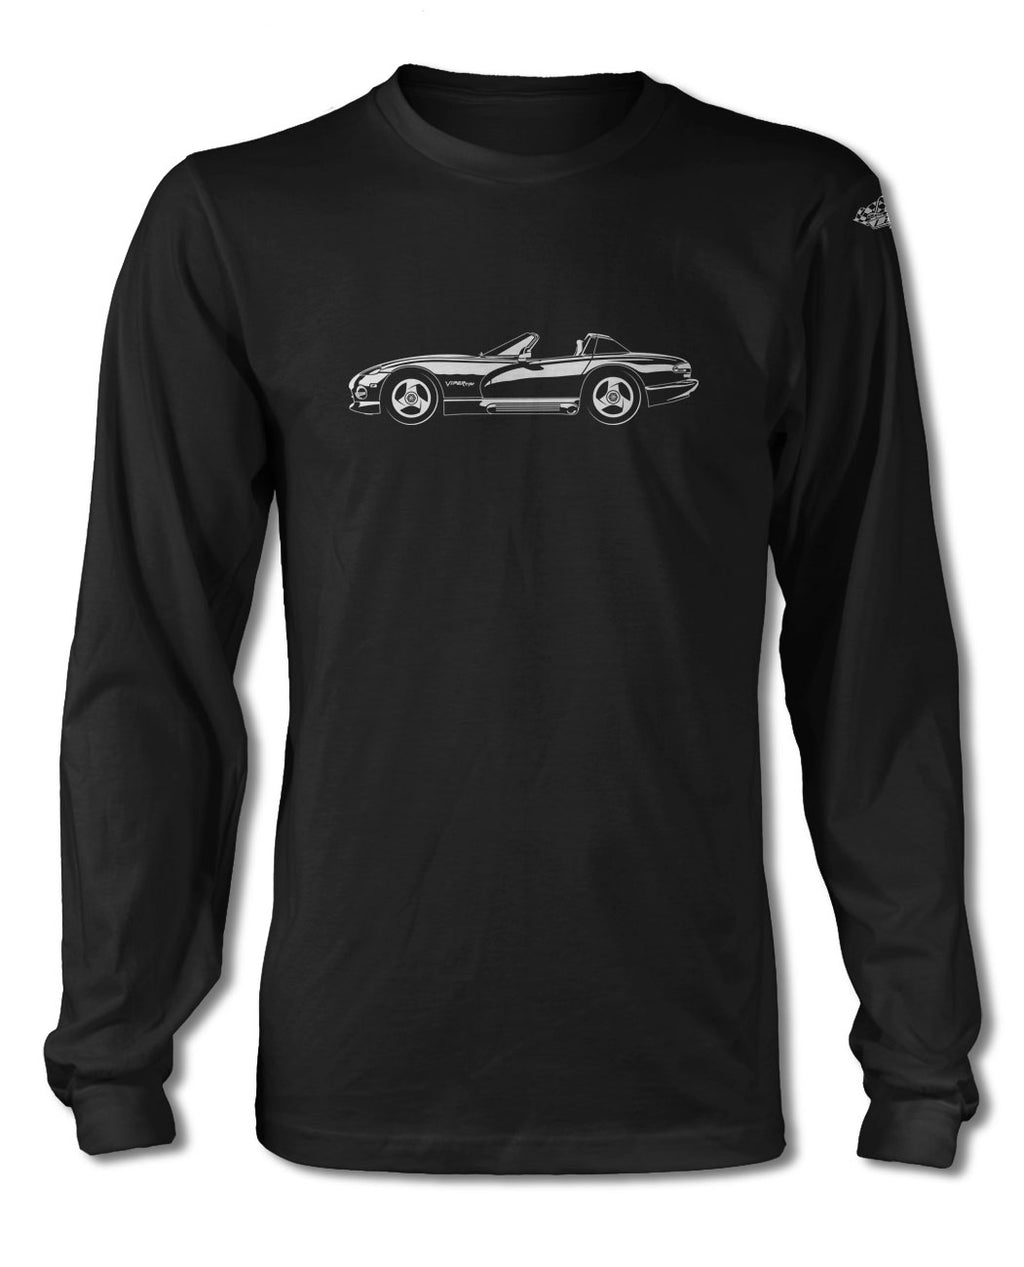 1991 - 1995 Dodge Viper SR1 T-Shirt - Long Sleeves - Side View